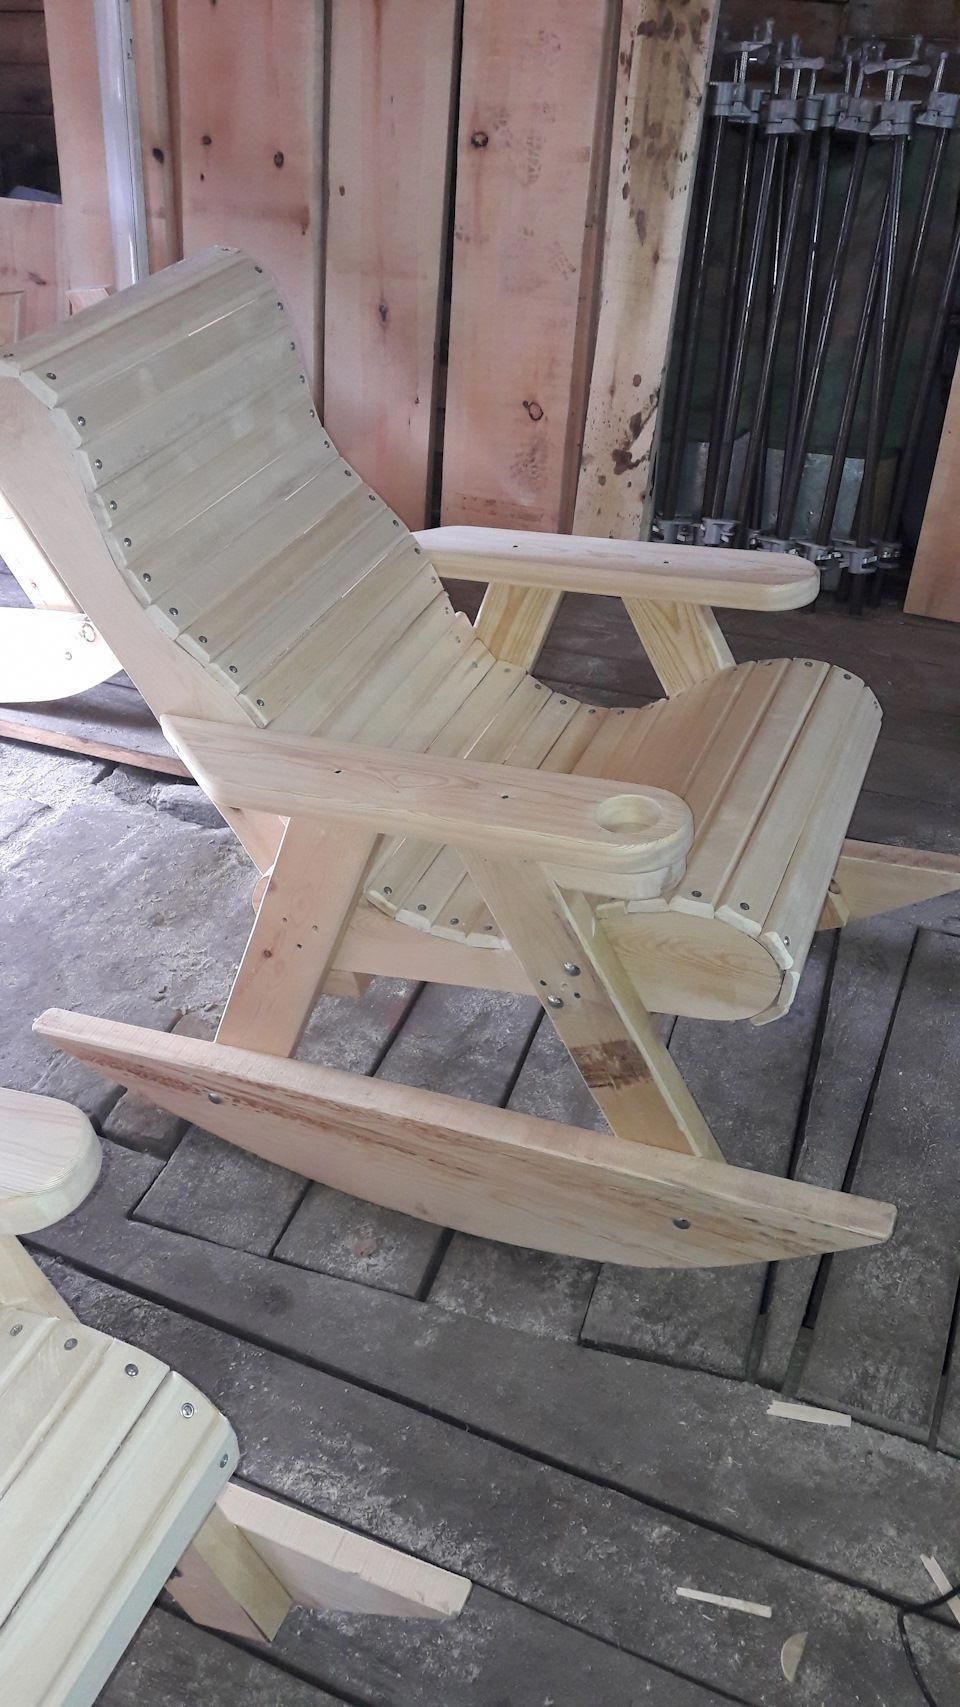 40 Outdoor Woodworking Projects for Beginners Diy